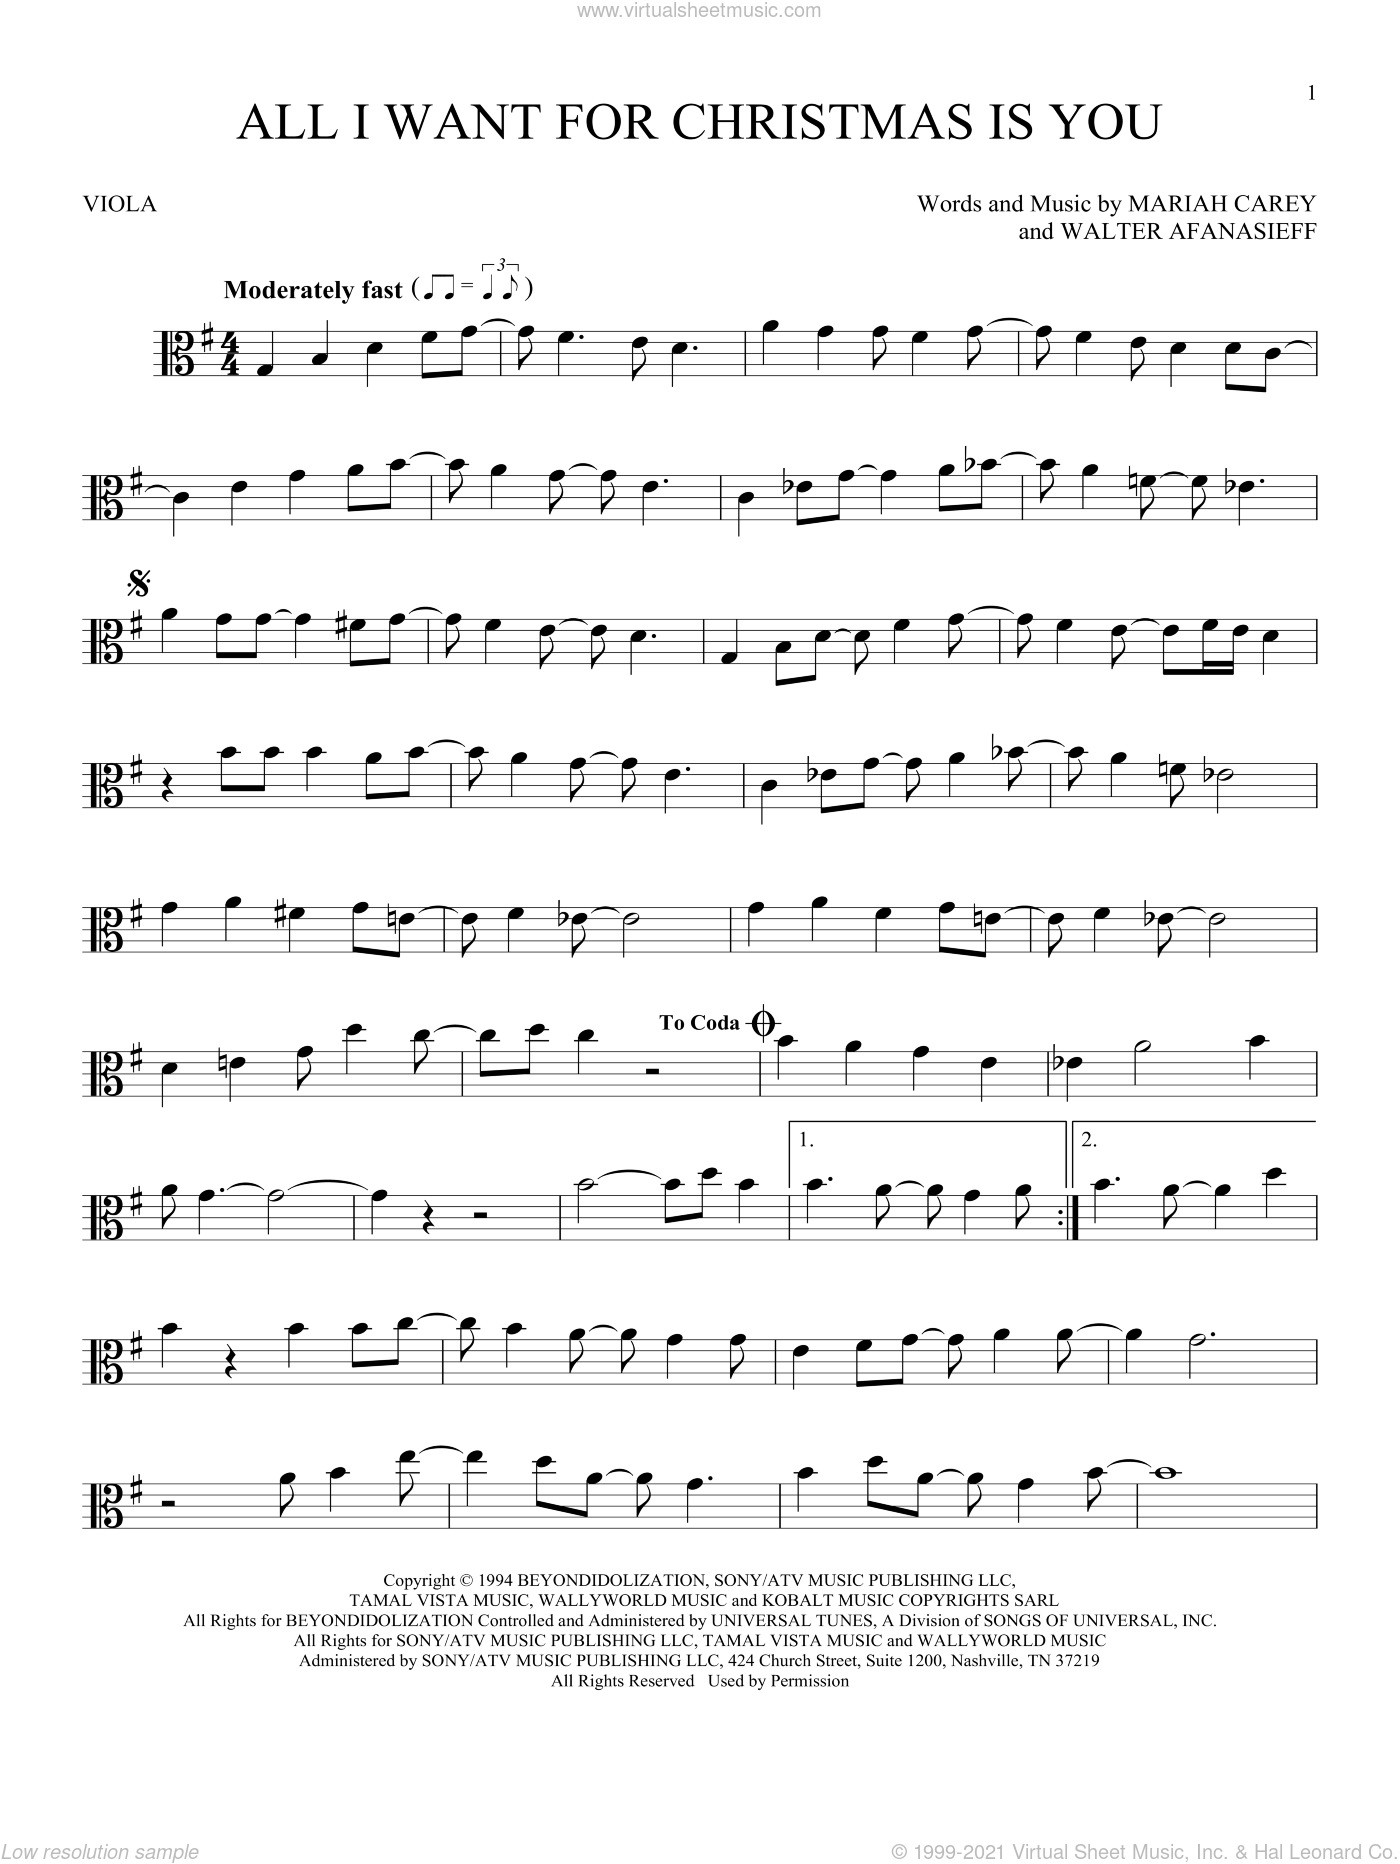 All I Want For Christmas Is You sheet music for viola solo by Walter Afanasieff and Mariah Carey. Score Image Preview.